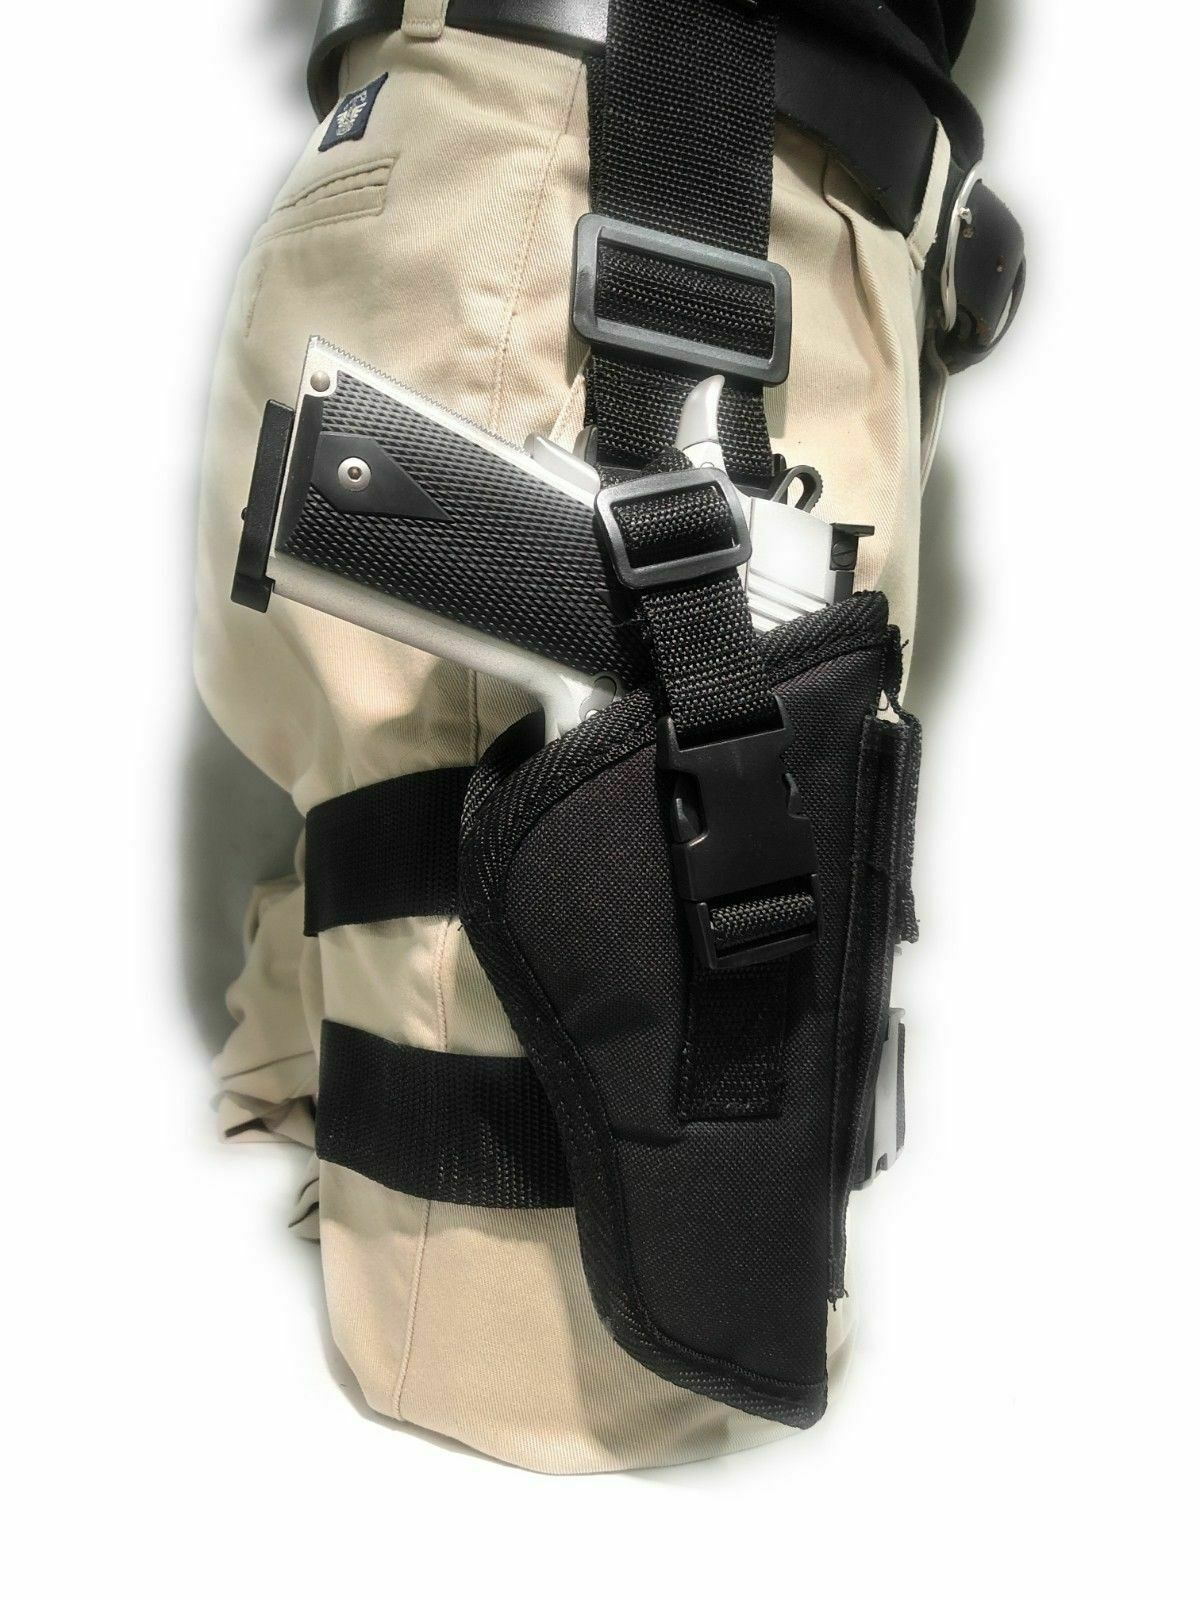 TACTICAL DROP LEG THIGH HOLSTER WITH MAGAZINE CARRIER- Choose Your Gun